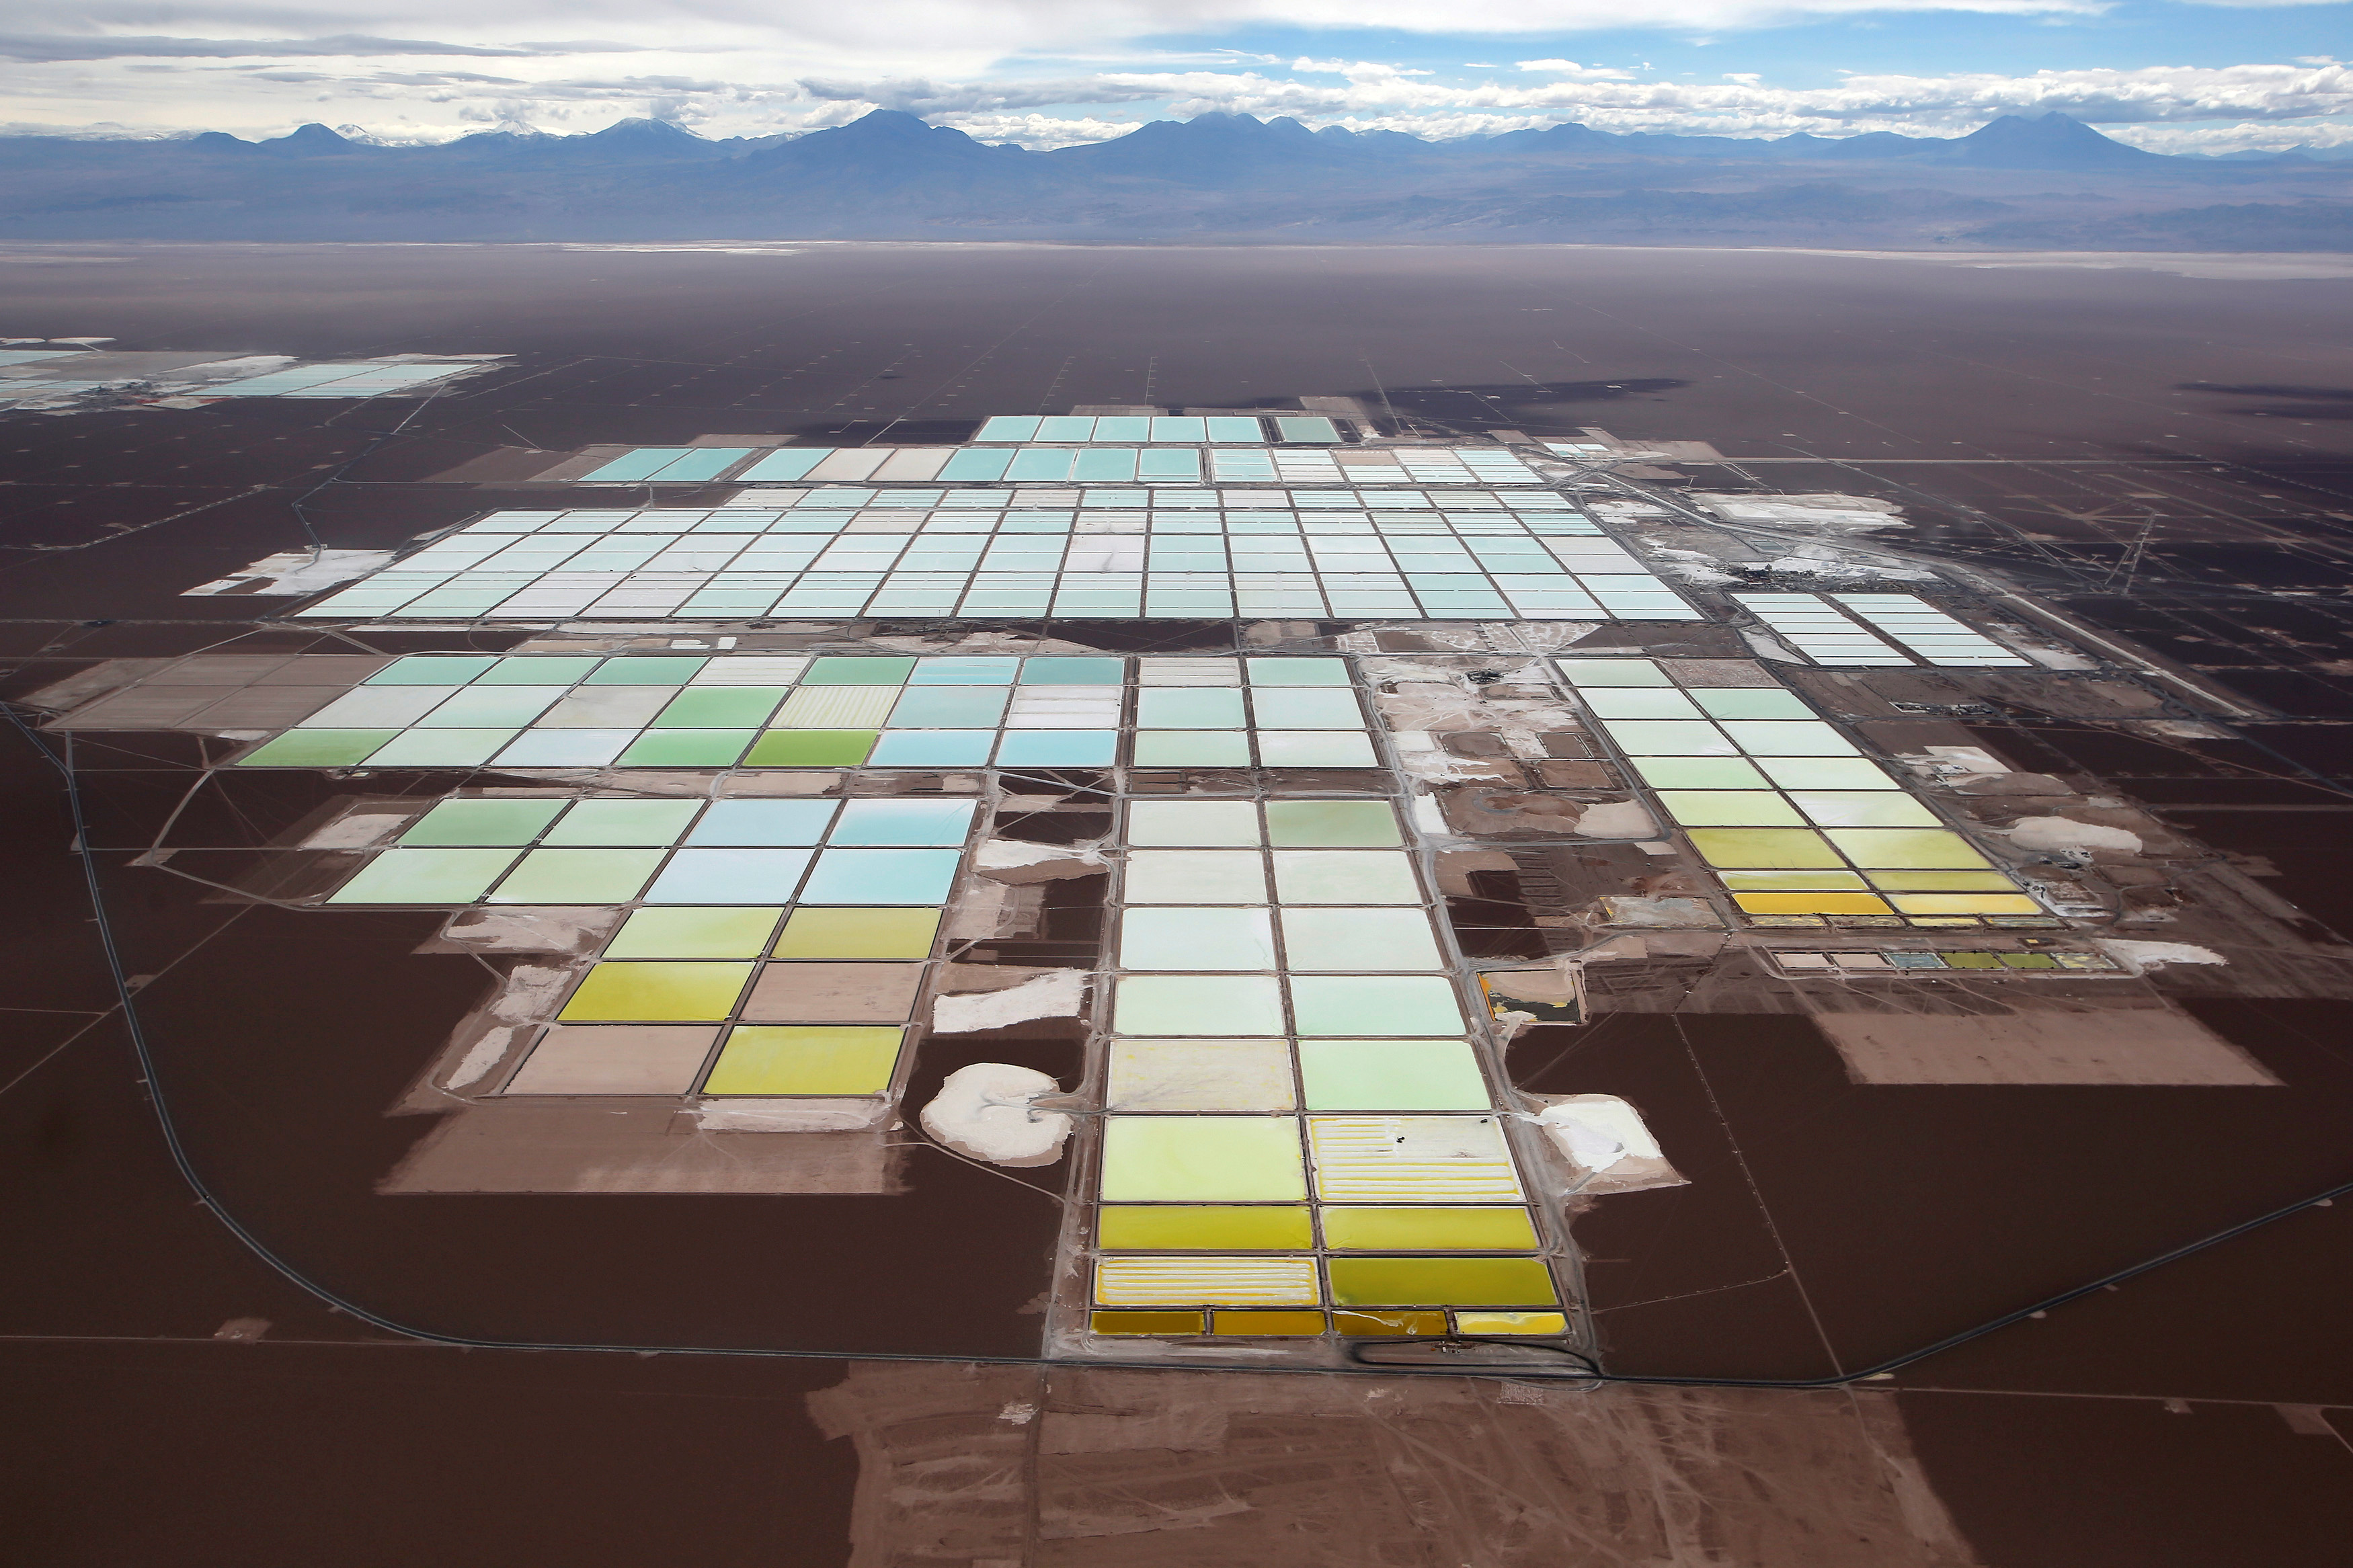 An aerial view shows the brine pools and processing areas of the Soquimich (SQM) lithium mine on the Atacama salt flat in the Atacama desert of northern Chile, January 10, 2013.REUTERS/Ivan Alvarado